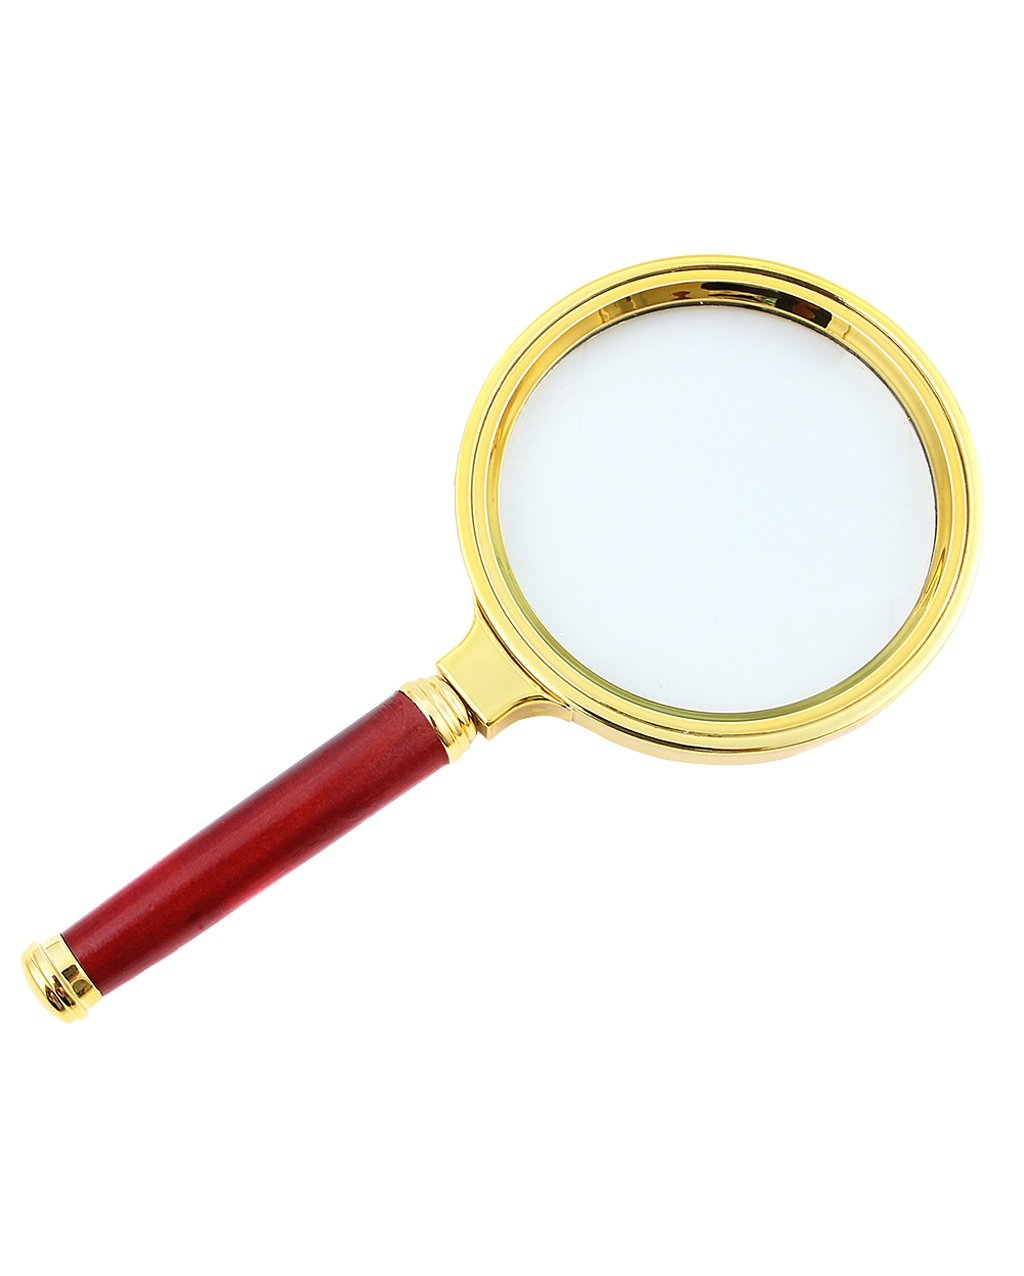 ZENGAI Magnifiers Optical Magnifying Glass 10 Times Ultra-clear Mahogany Hand-held Reading Magnifying Glass 80MM Cloth Bag Lens